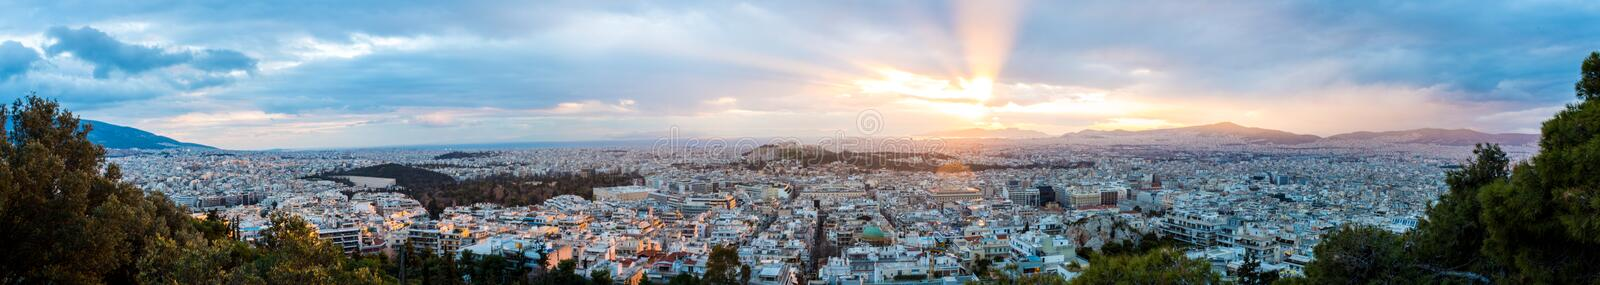 Atenas, Grécia no por do sol foto de stock royalty free